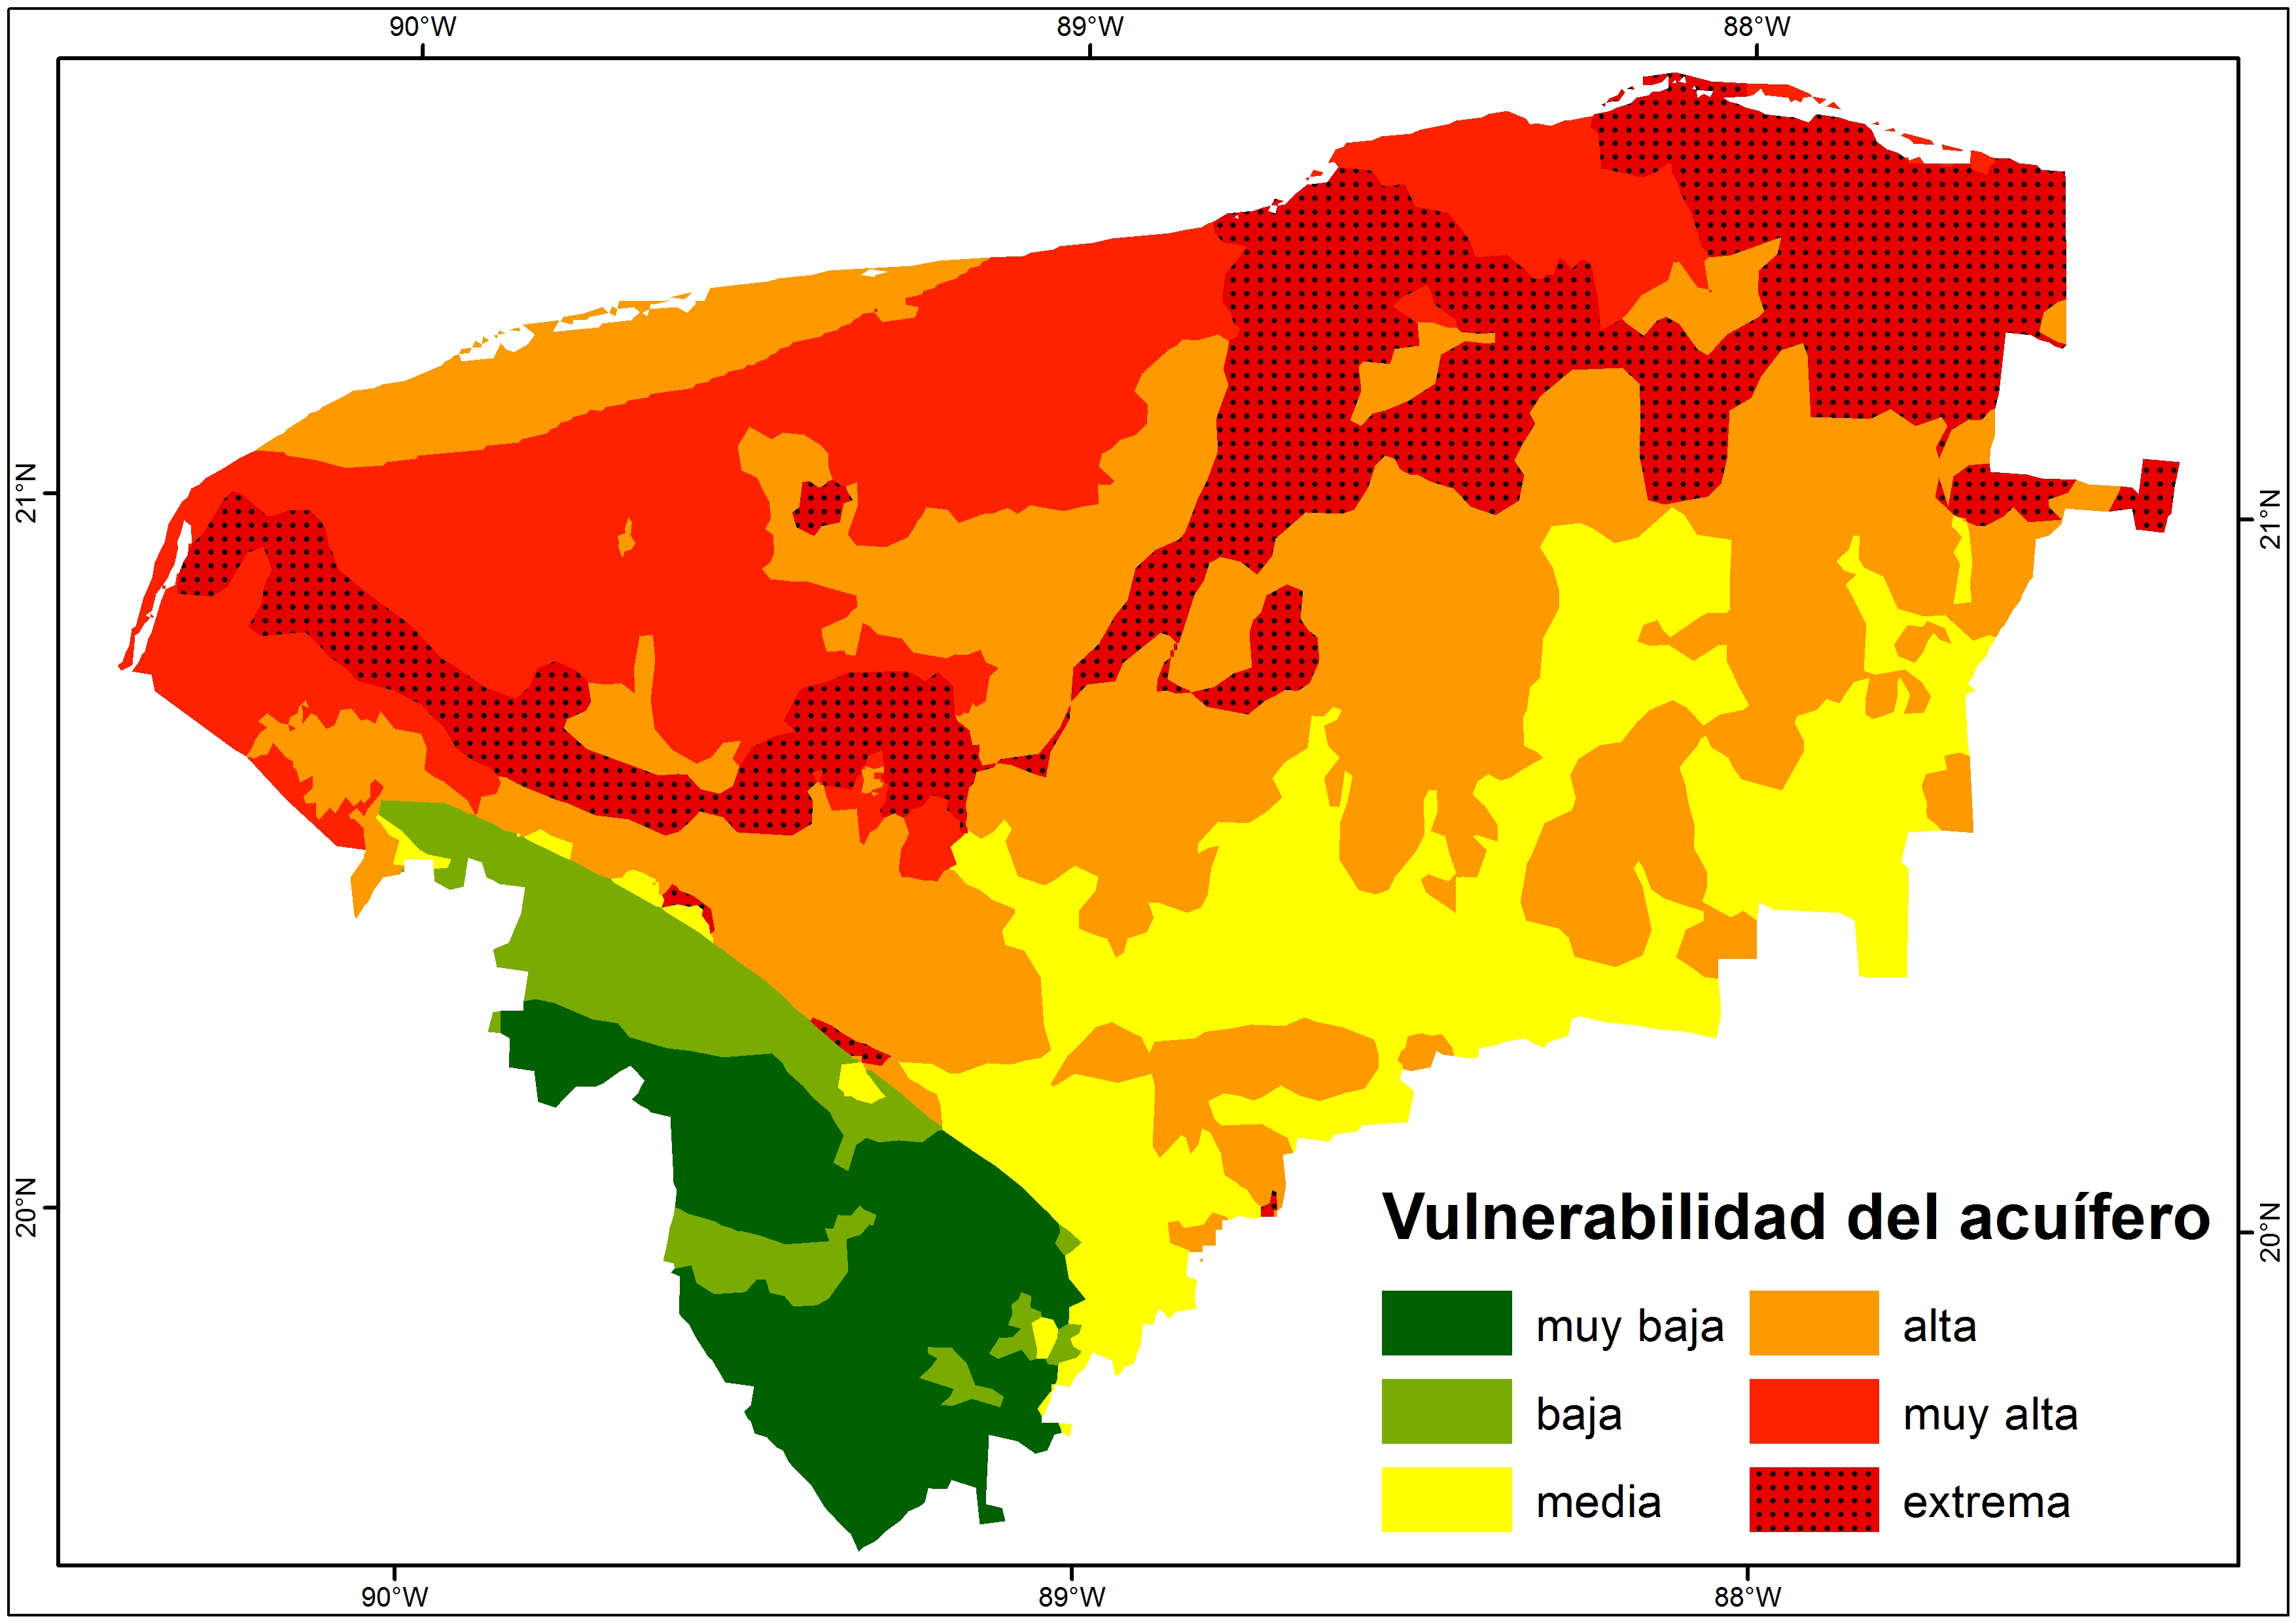 IVAKY: Index of vulnerability to pollution of yucatecan karstic aquifer